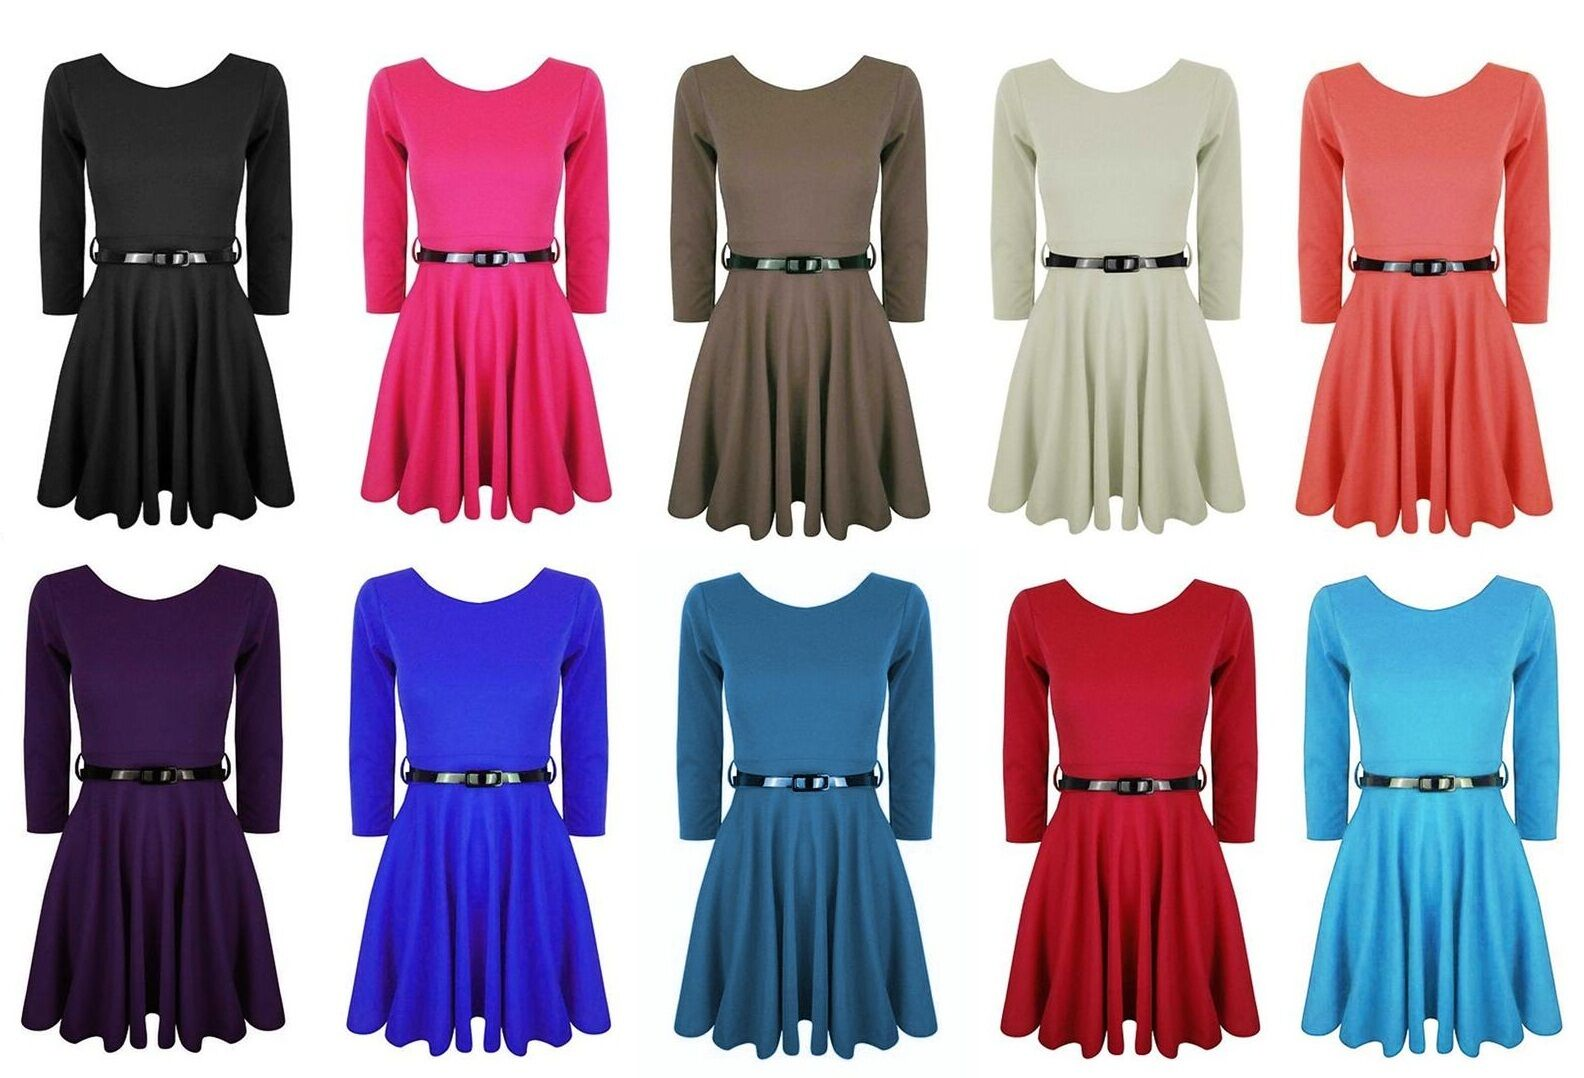 Girls Skater Dress 3/4 Sleeve Belted Flared Frankie Party To